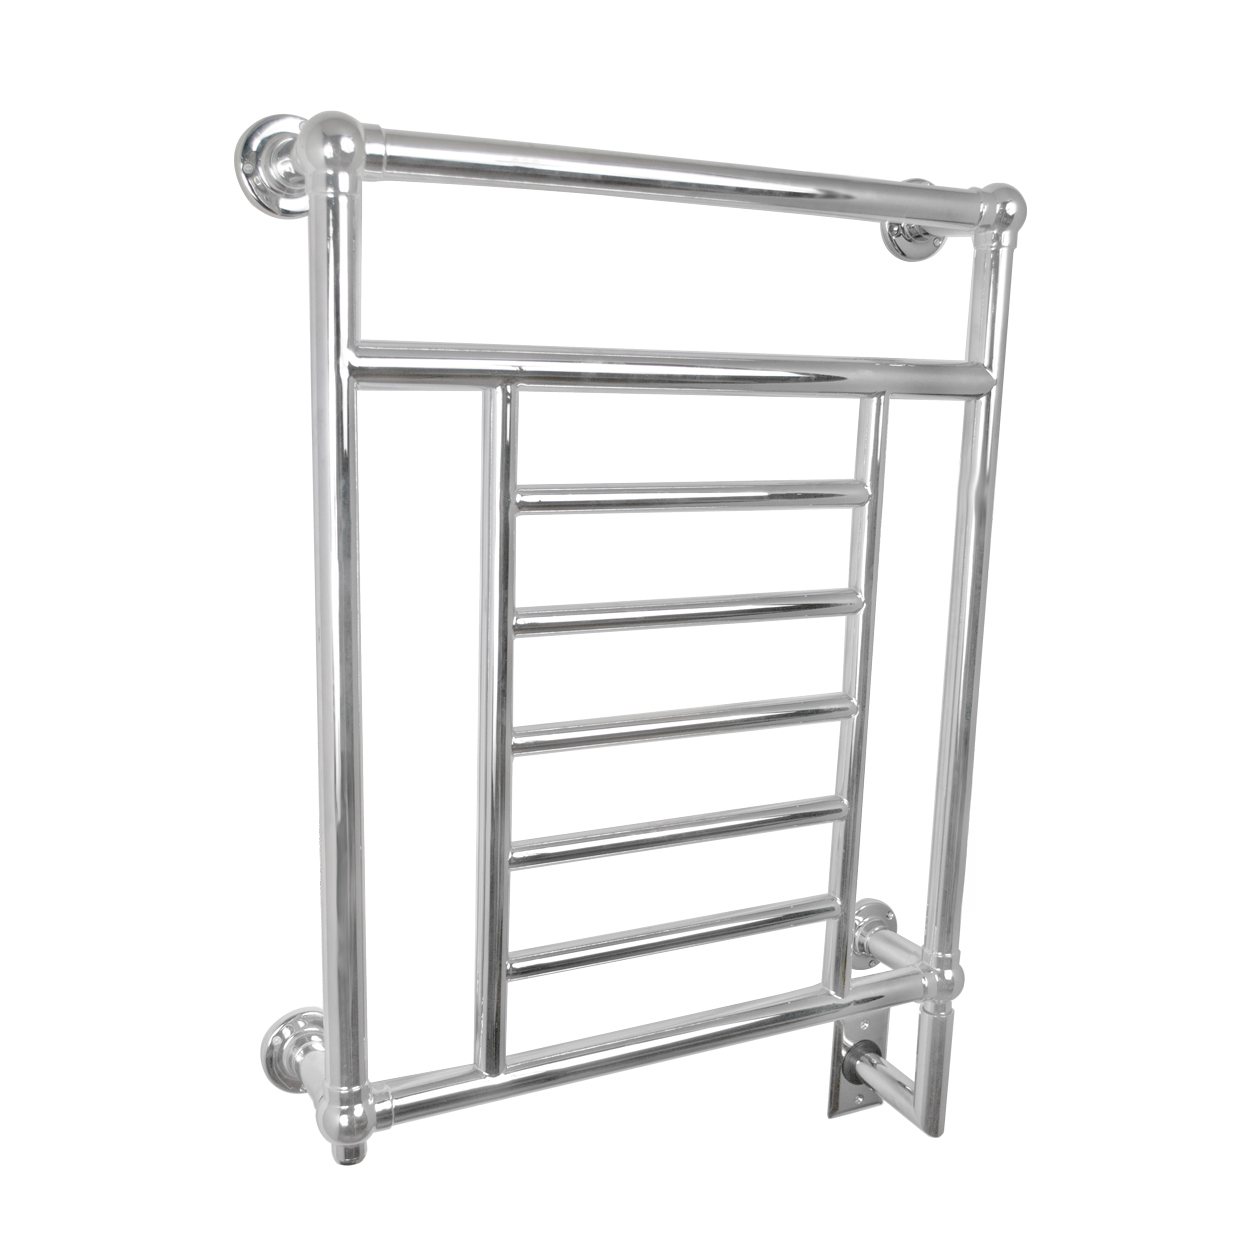 Amba Towel Warmers Reviews | Amba Towel Warmers | Electric Heated Towel Rack